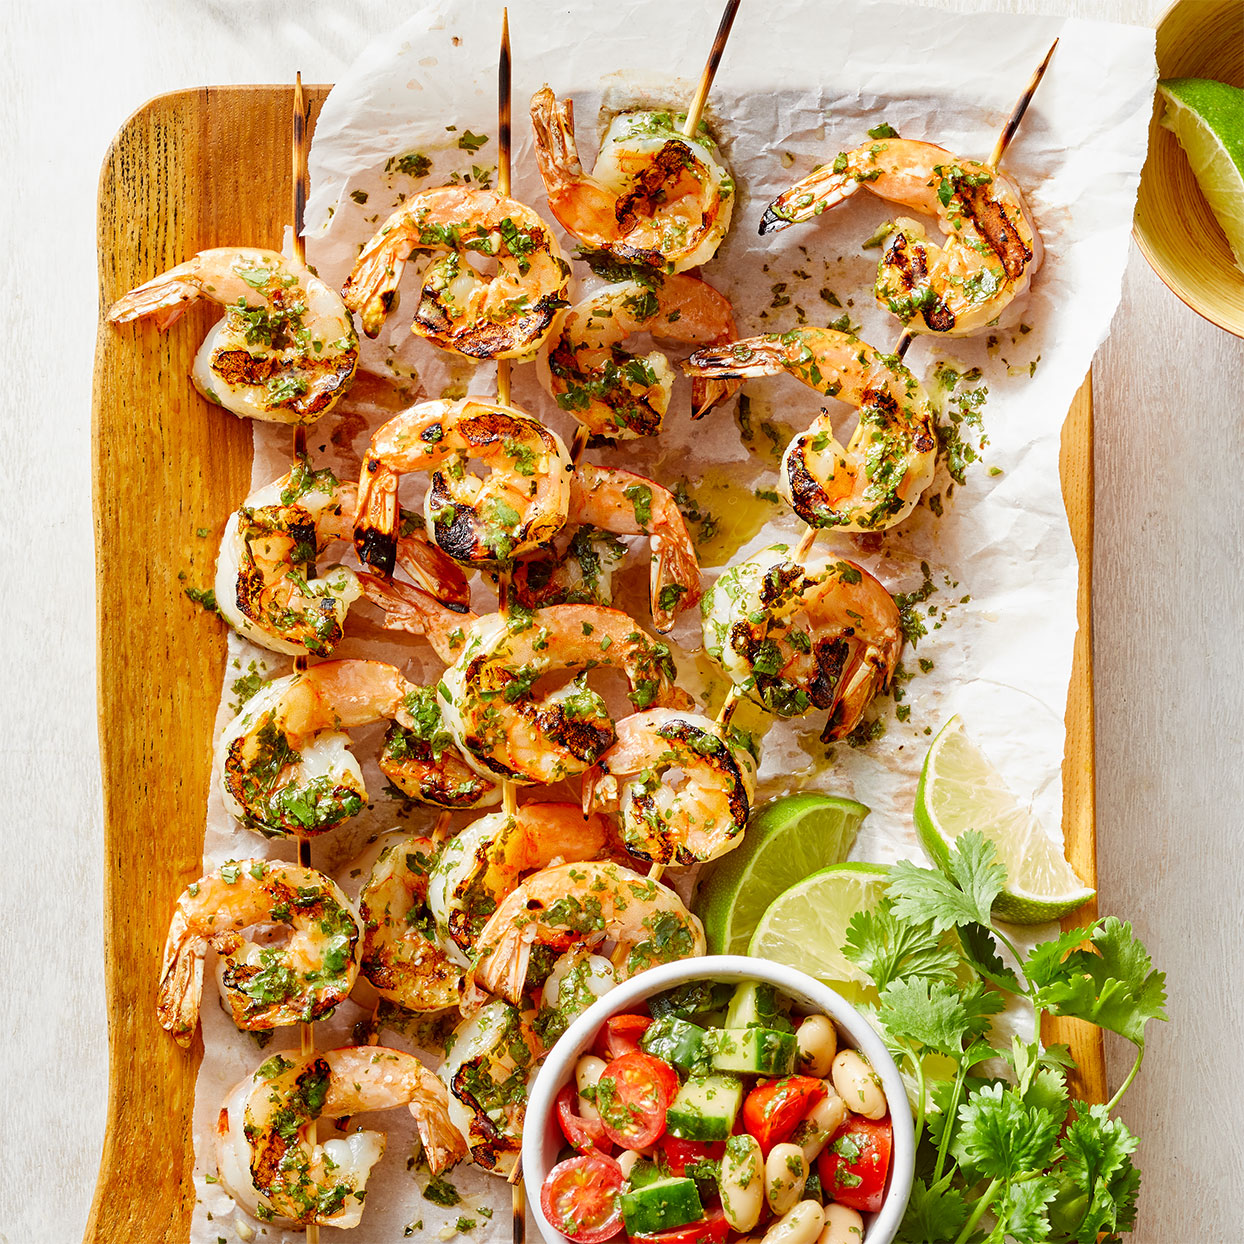 Fresh cilantro, parsley, and lime juice make a tangy green salsa that adds lively flavor to this easy grilled shrimp recipe. Source: Diabetic Living Magazine, Spring 2020